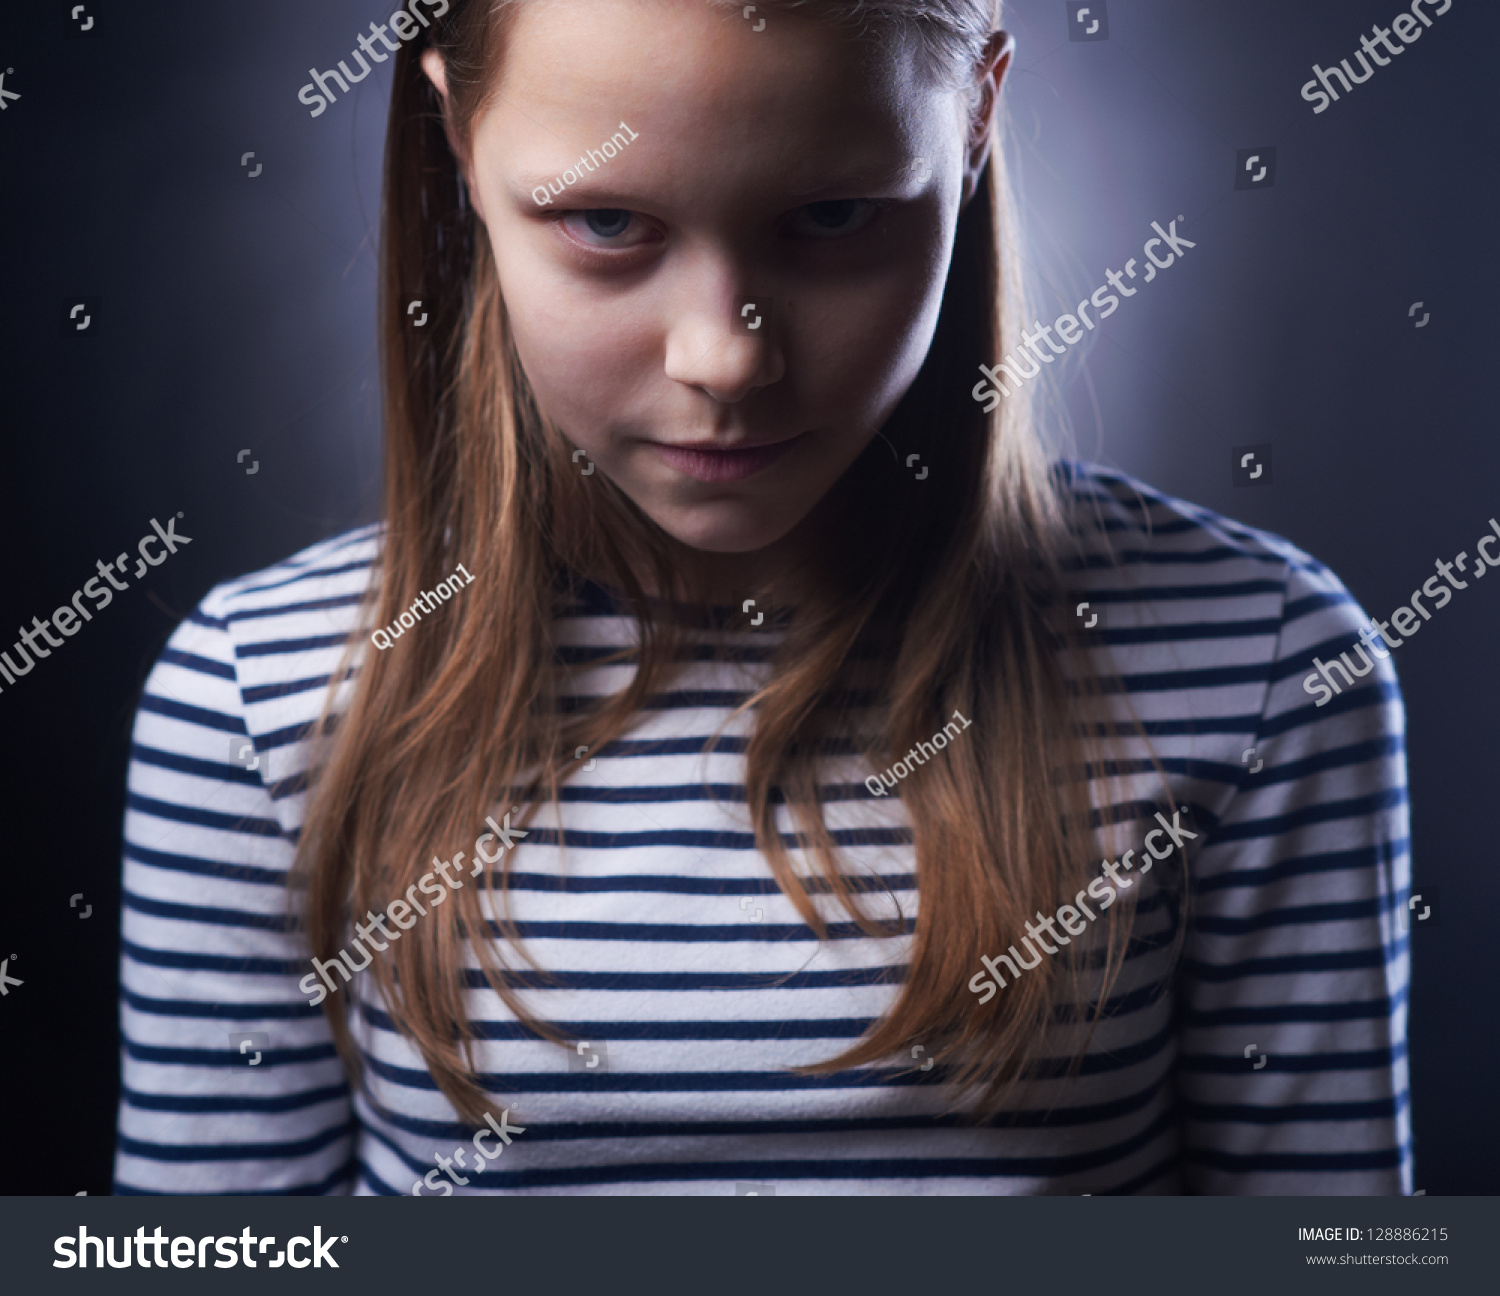 Portrait Of A Little Girl With Evil Face Stock Photo 128886215 : Shutterstock